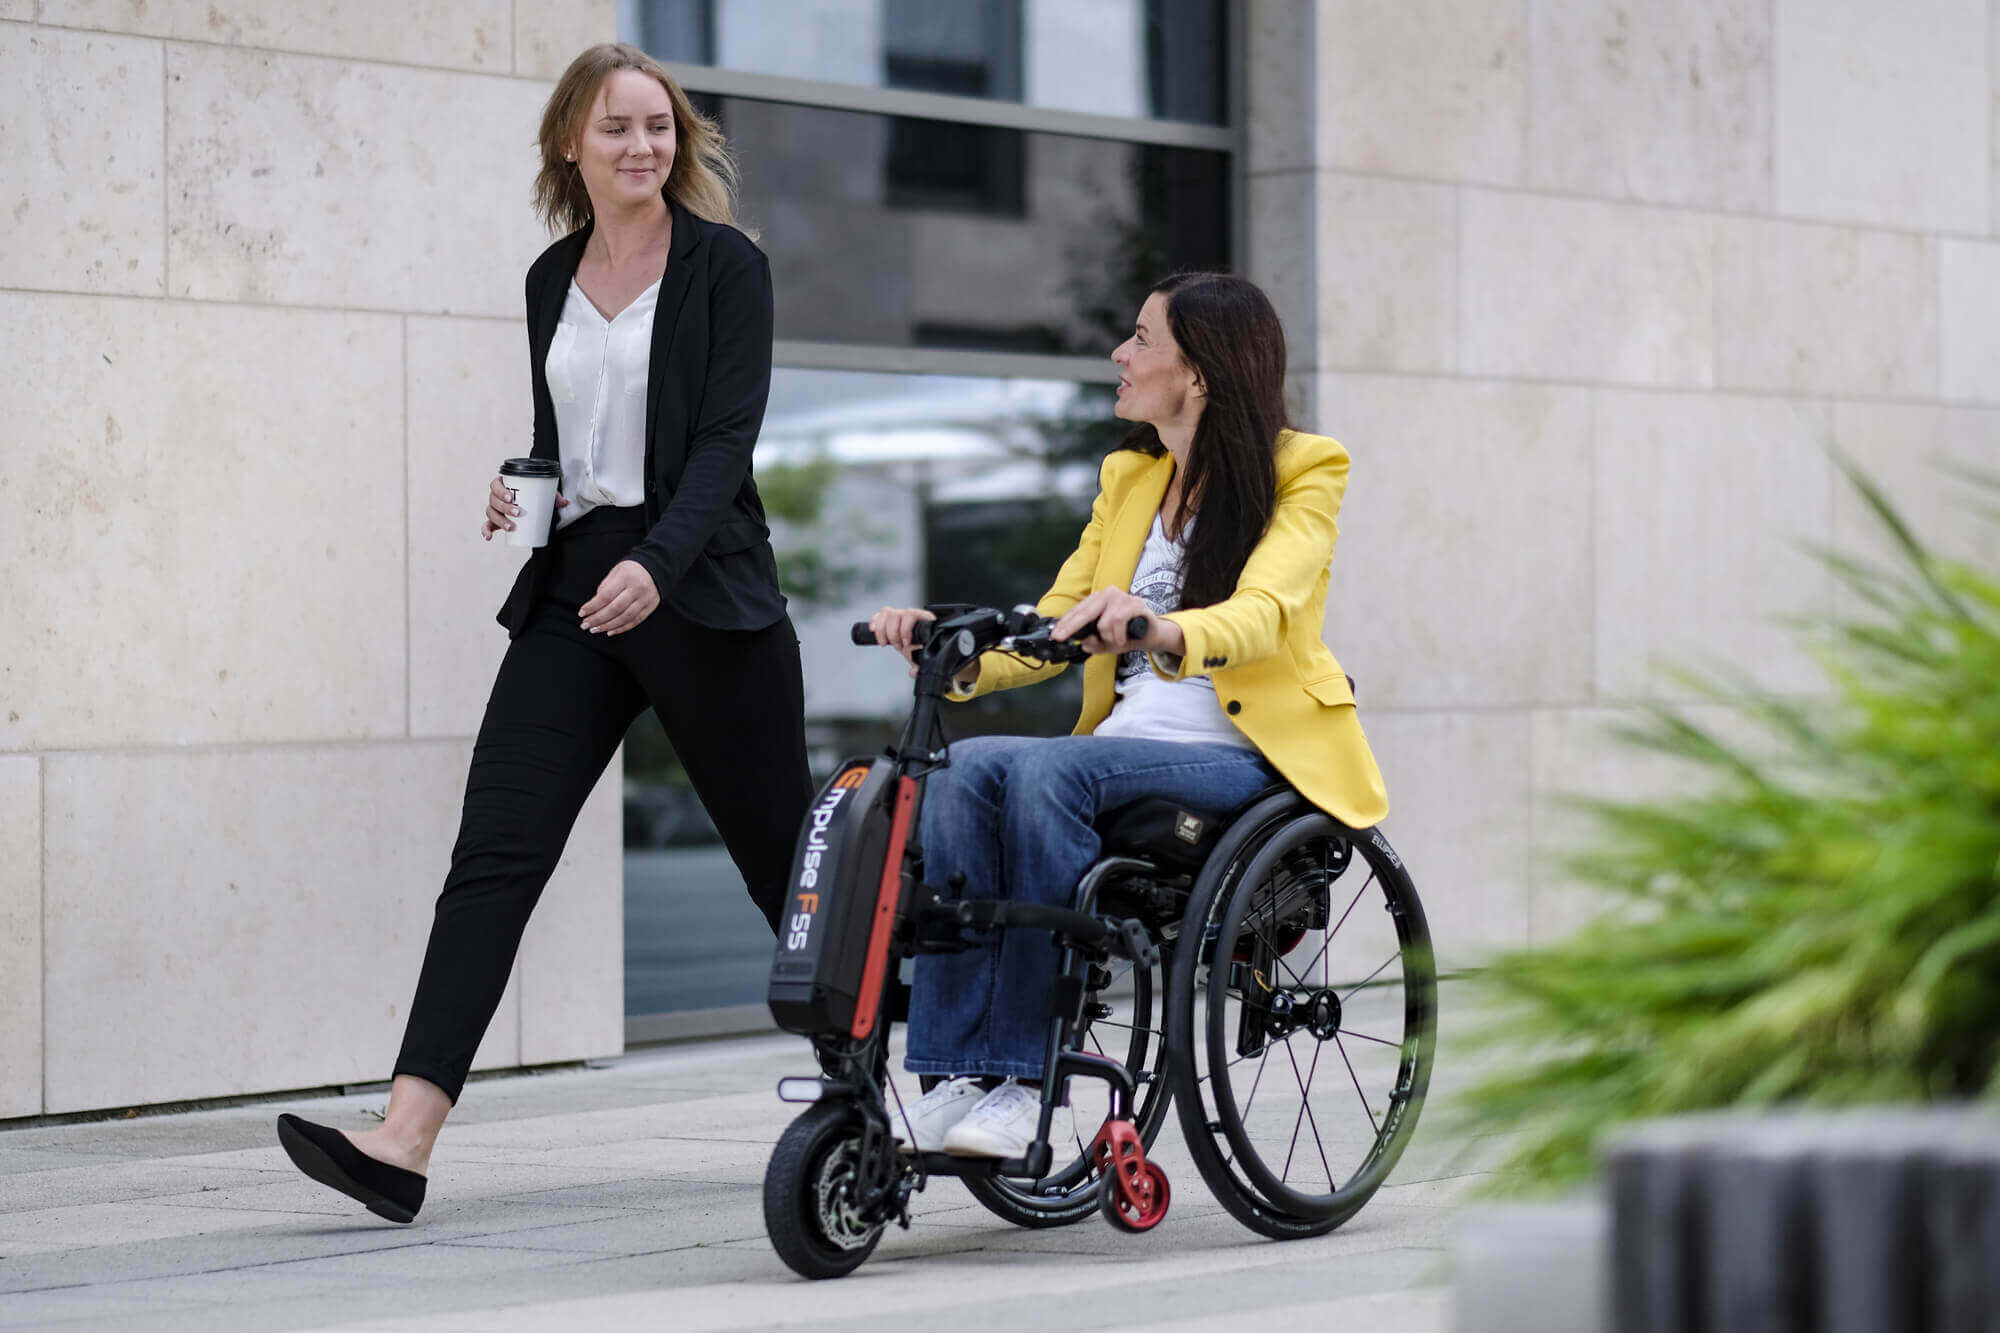 Empulse pull device on manual wheelchair used by woman on way to work with a friend